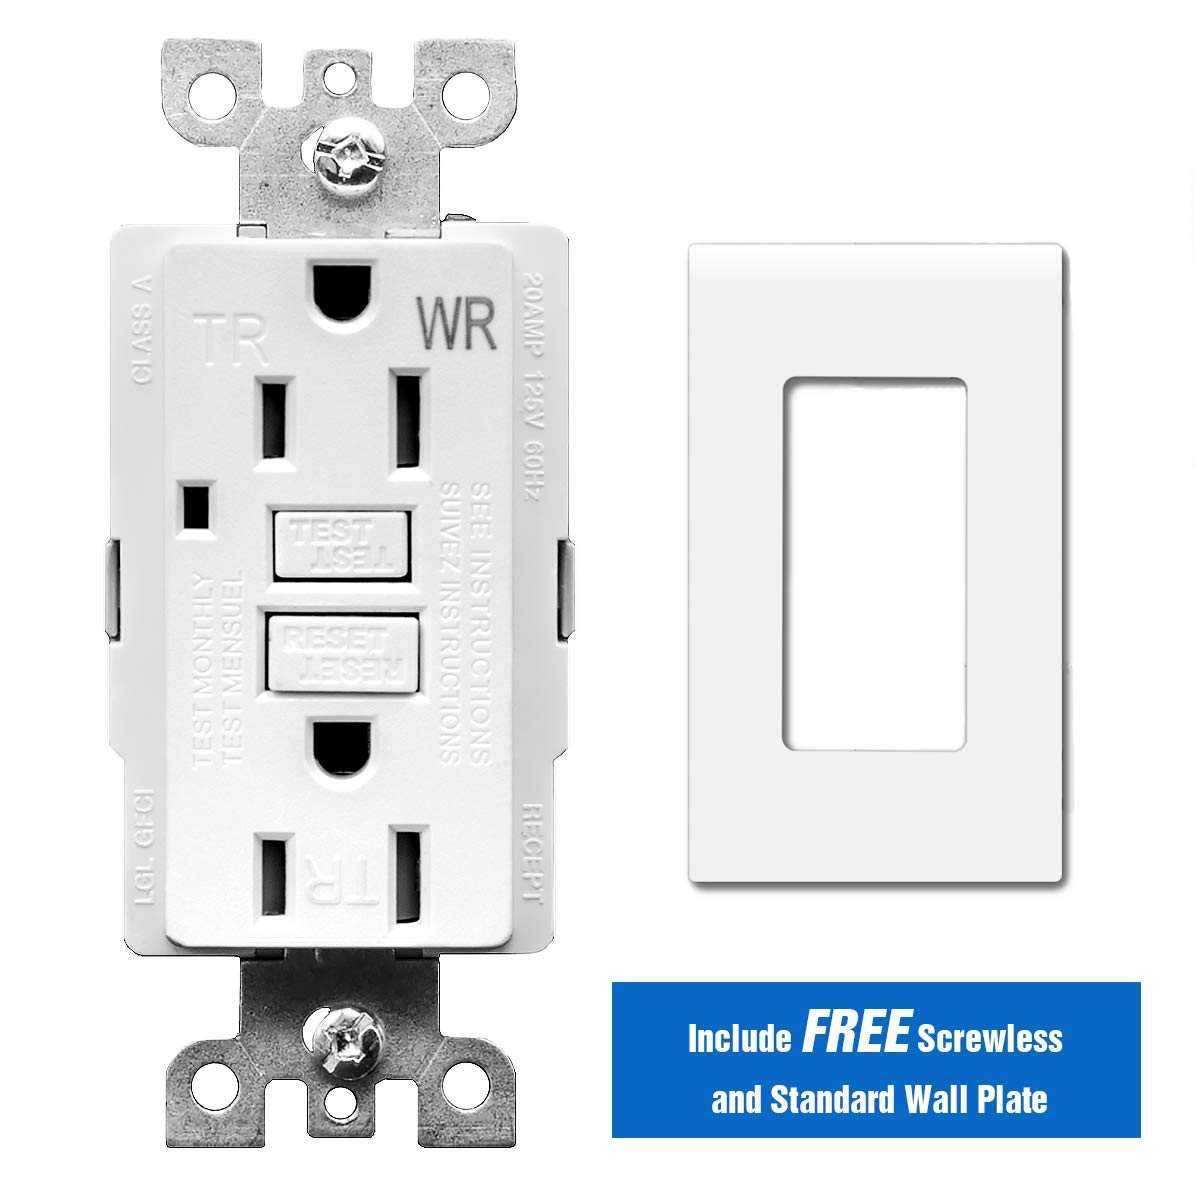 Topele 15 Amp Gfci Outlet 125 Volt Weather Resistant Tamper Groundfault Circuitinterrupter Receptacles Must Be Wired Correctly Receptacle Indicators With Led Light 1 Wall Plate And Screws Included White